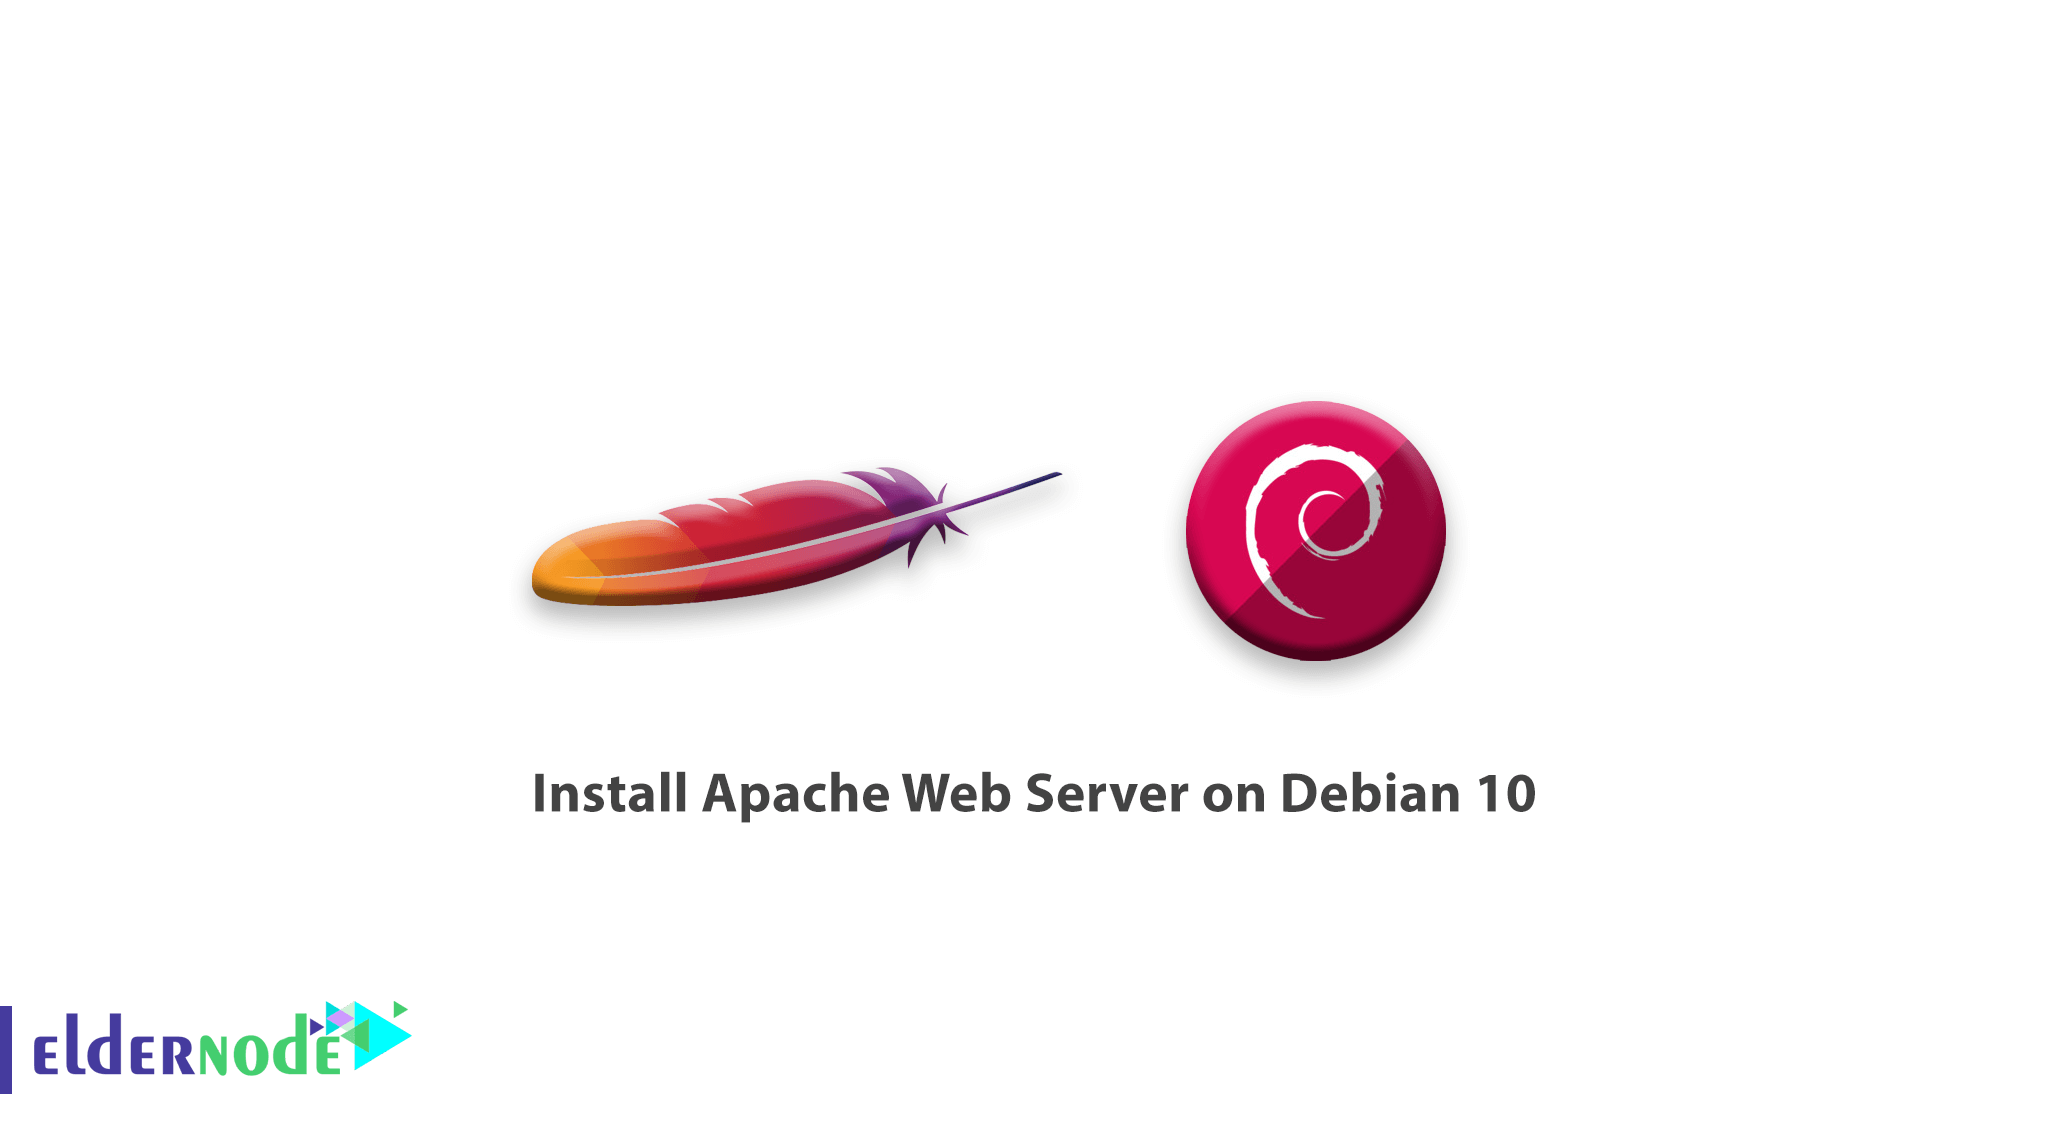 How to install Apache Web Server on Debian 10